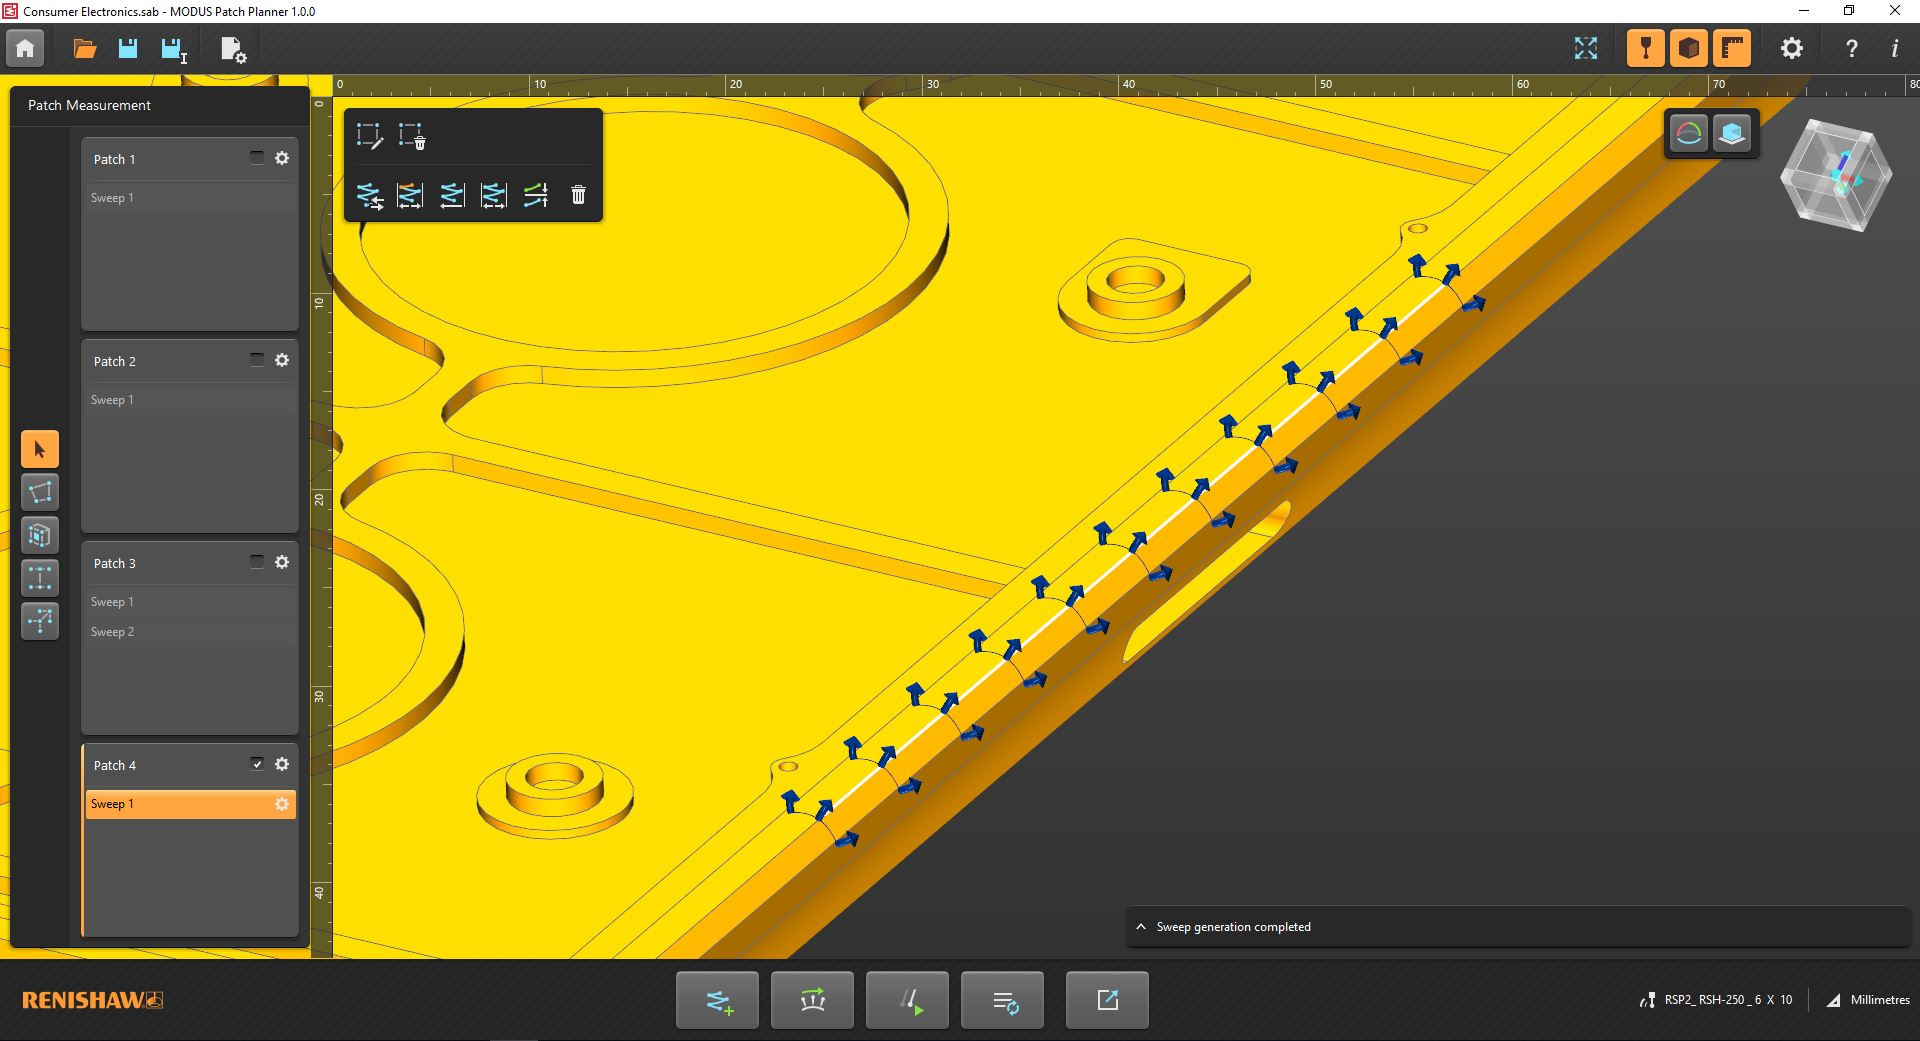 Enhanced access capability for the REVO® 5-axis measurement